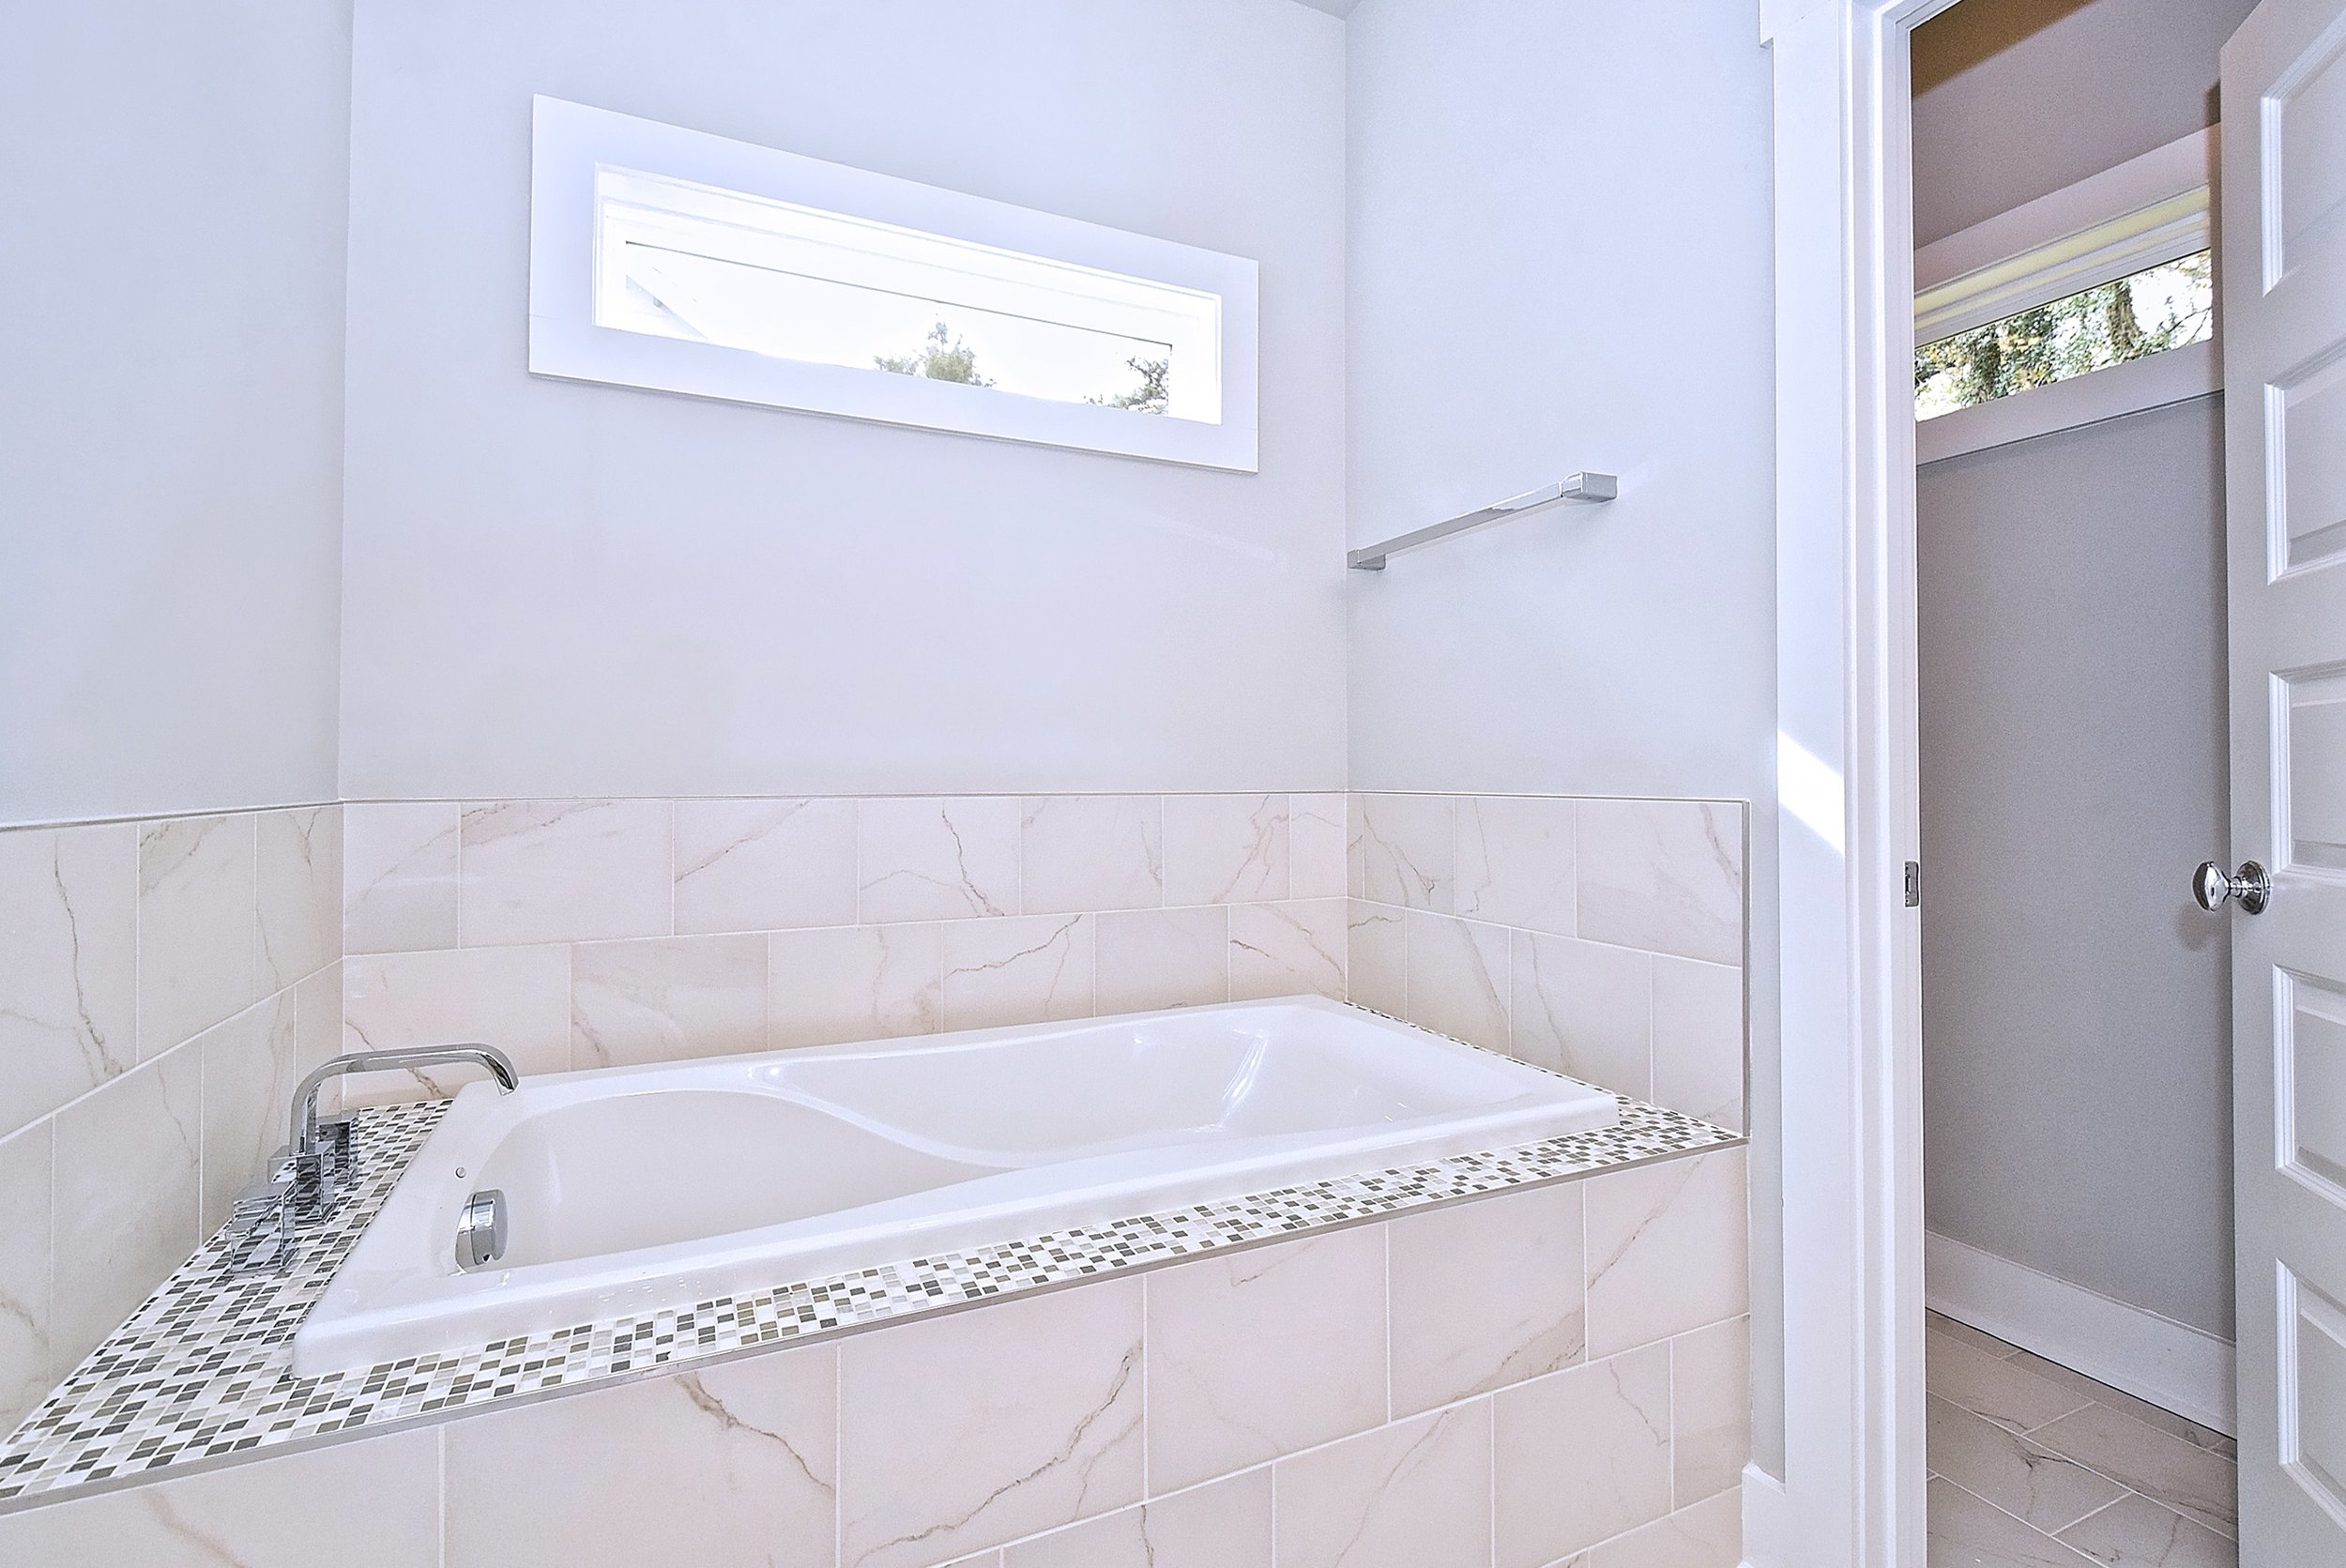 027_Master Bathroom.jpg